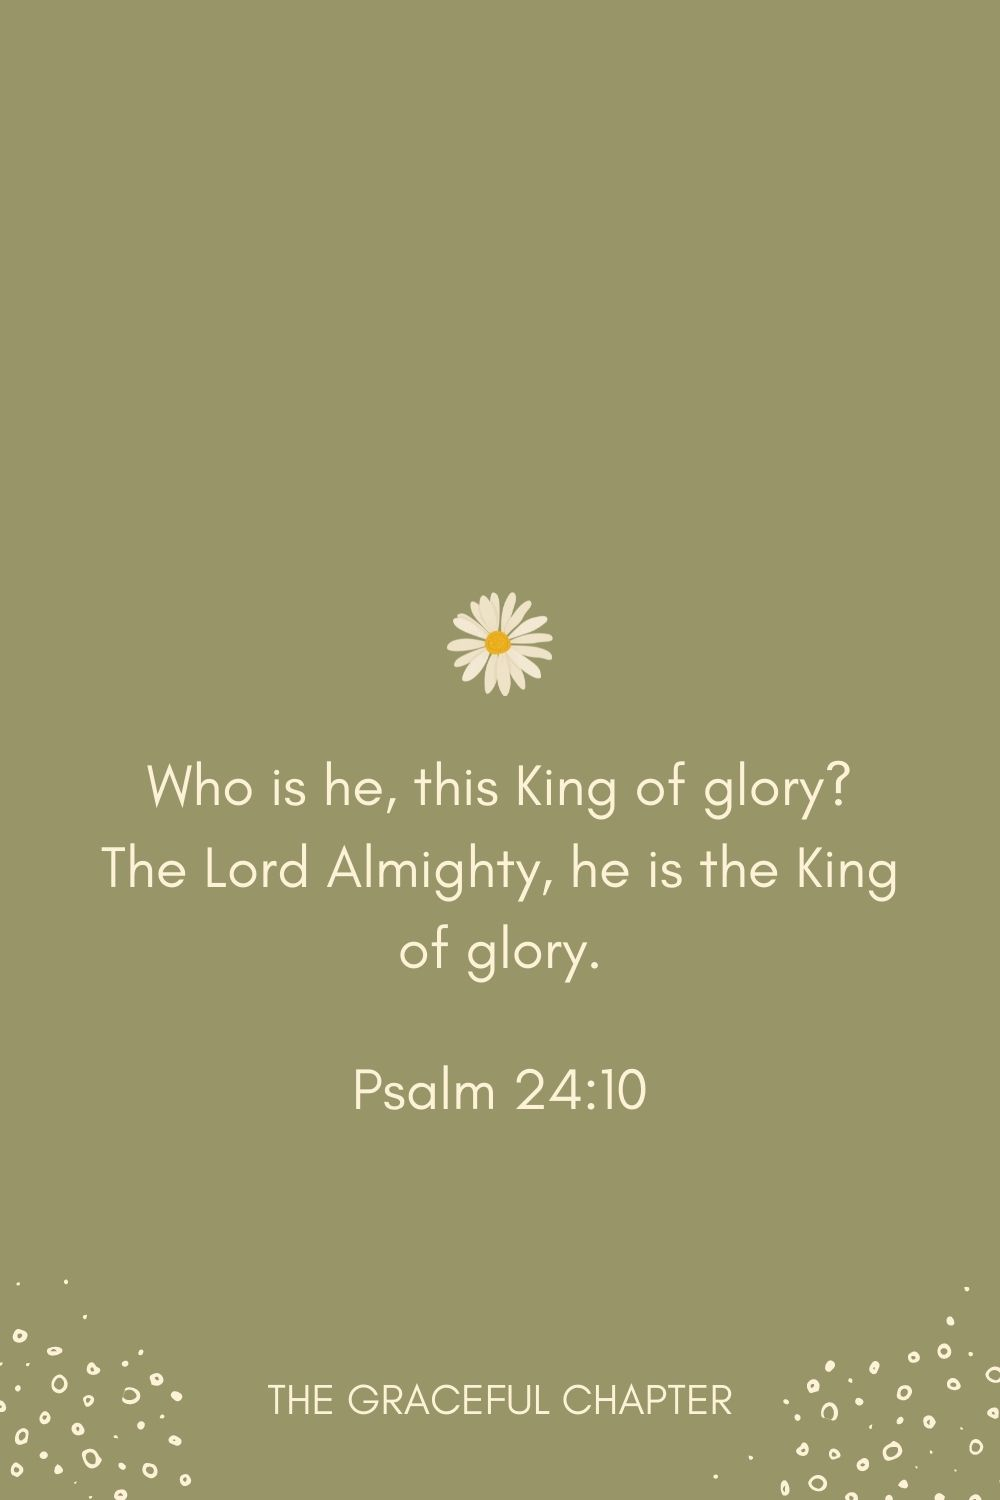 Who is he, this King of glory? The Lord Almighty, he is the King of glory. Psalm 24:10